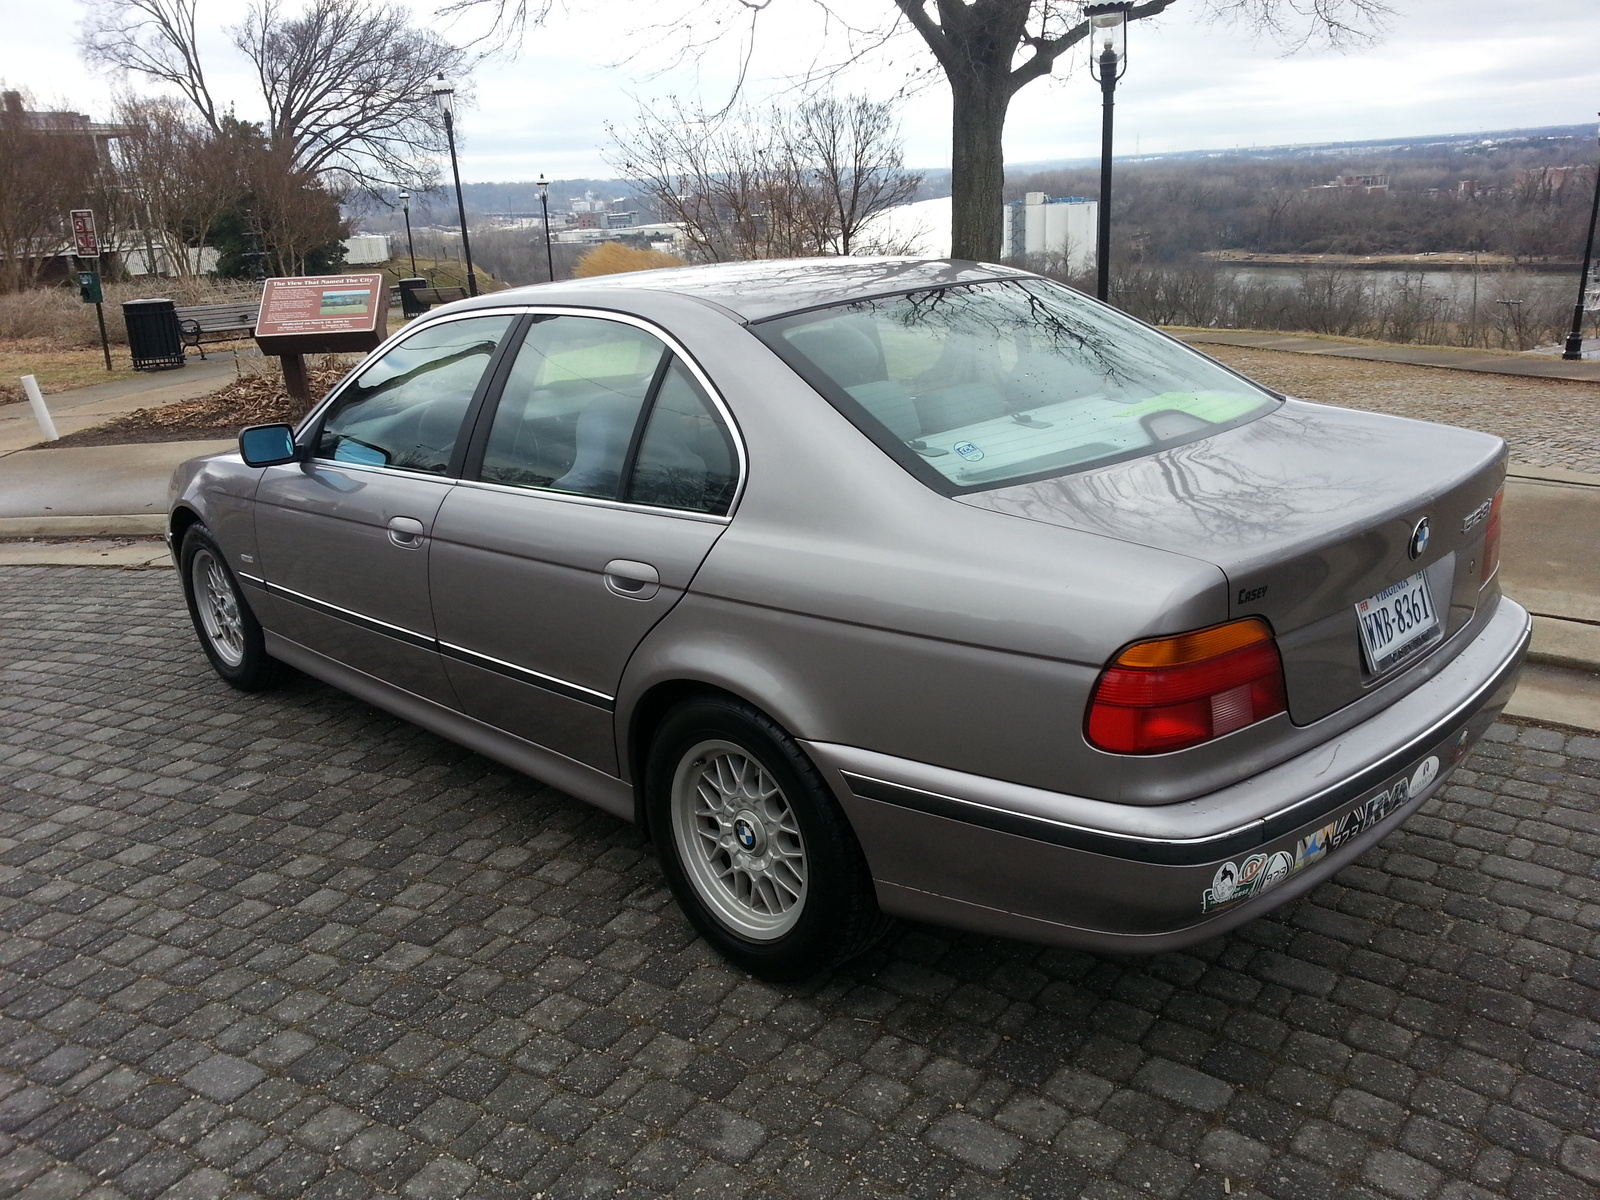 BMW 5 series 530i 2000 photo - 10